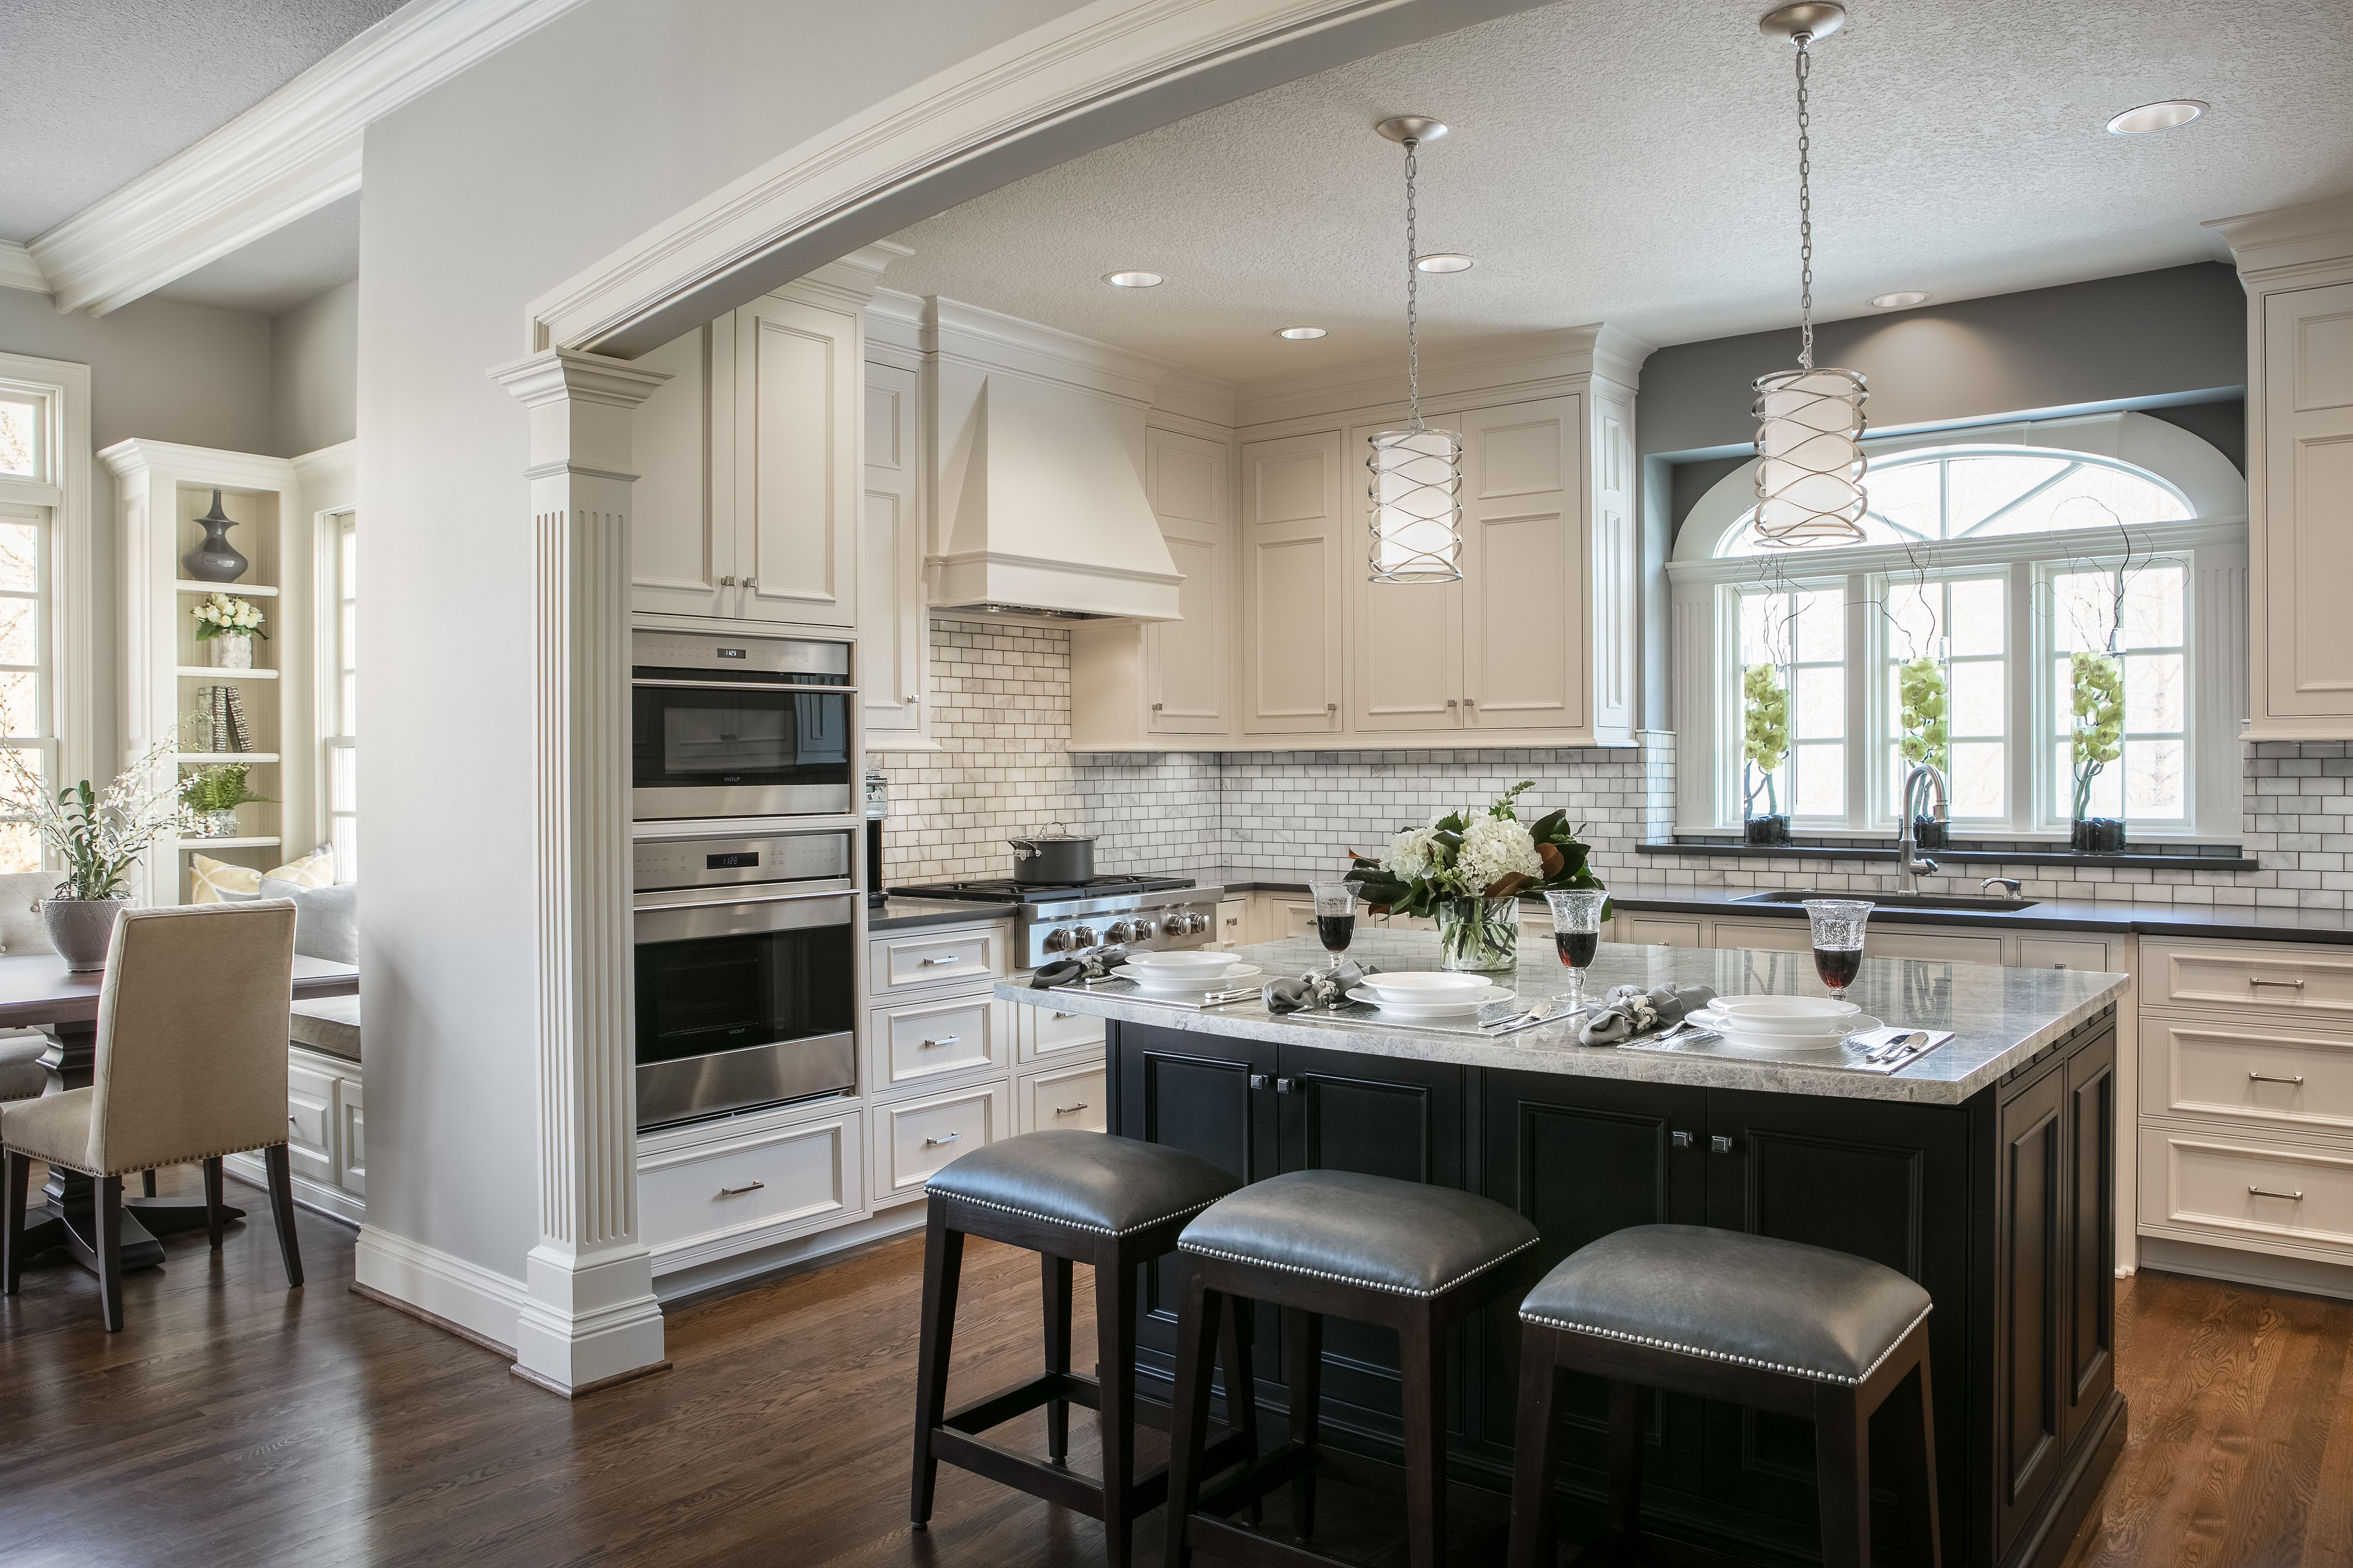 The Cream Colored Inset Cabinets Brighten This Space And Conceals The  Refrigerator, Providing A Seamless To Look In This Newly Updated Kitchen.